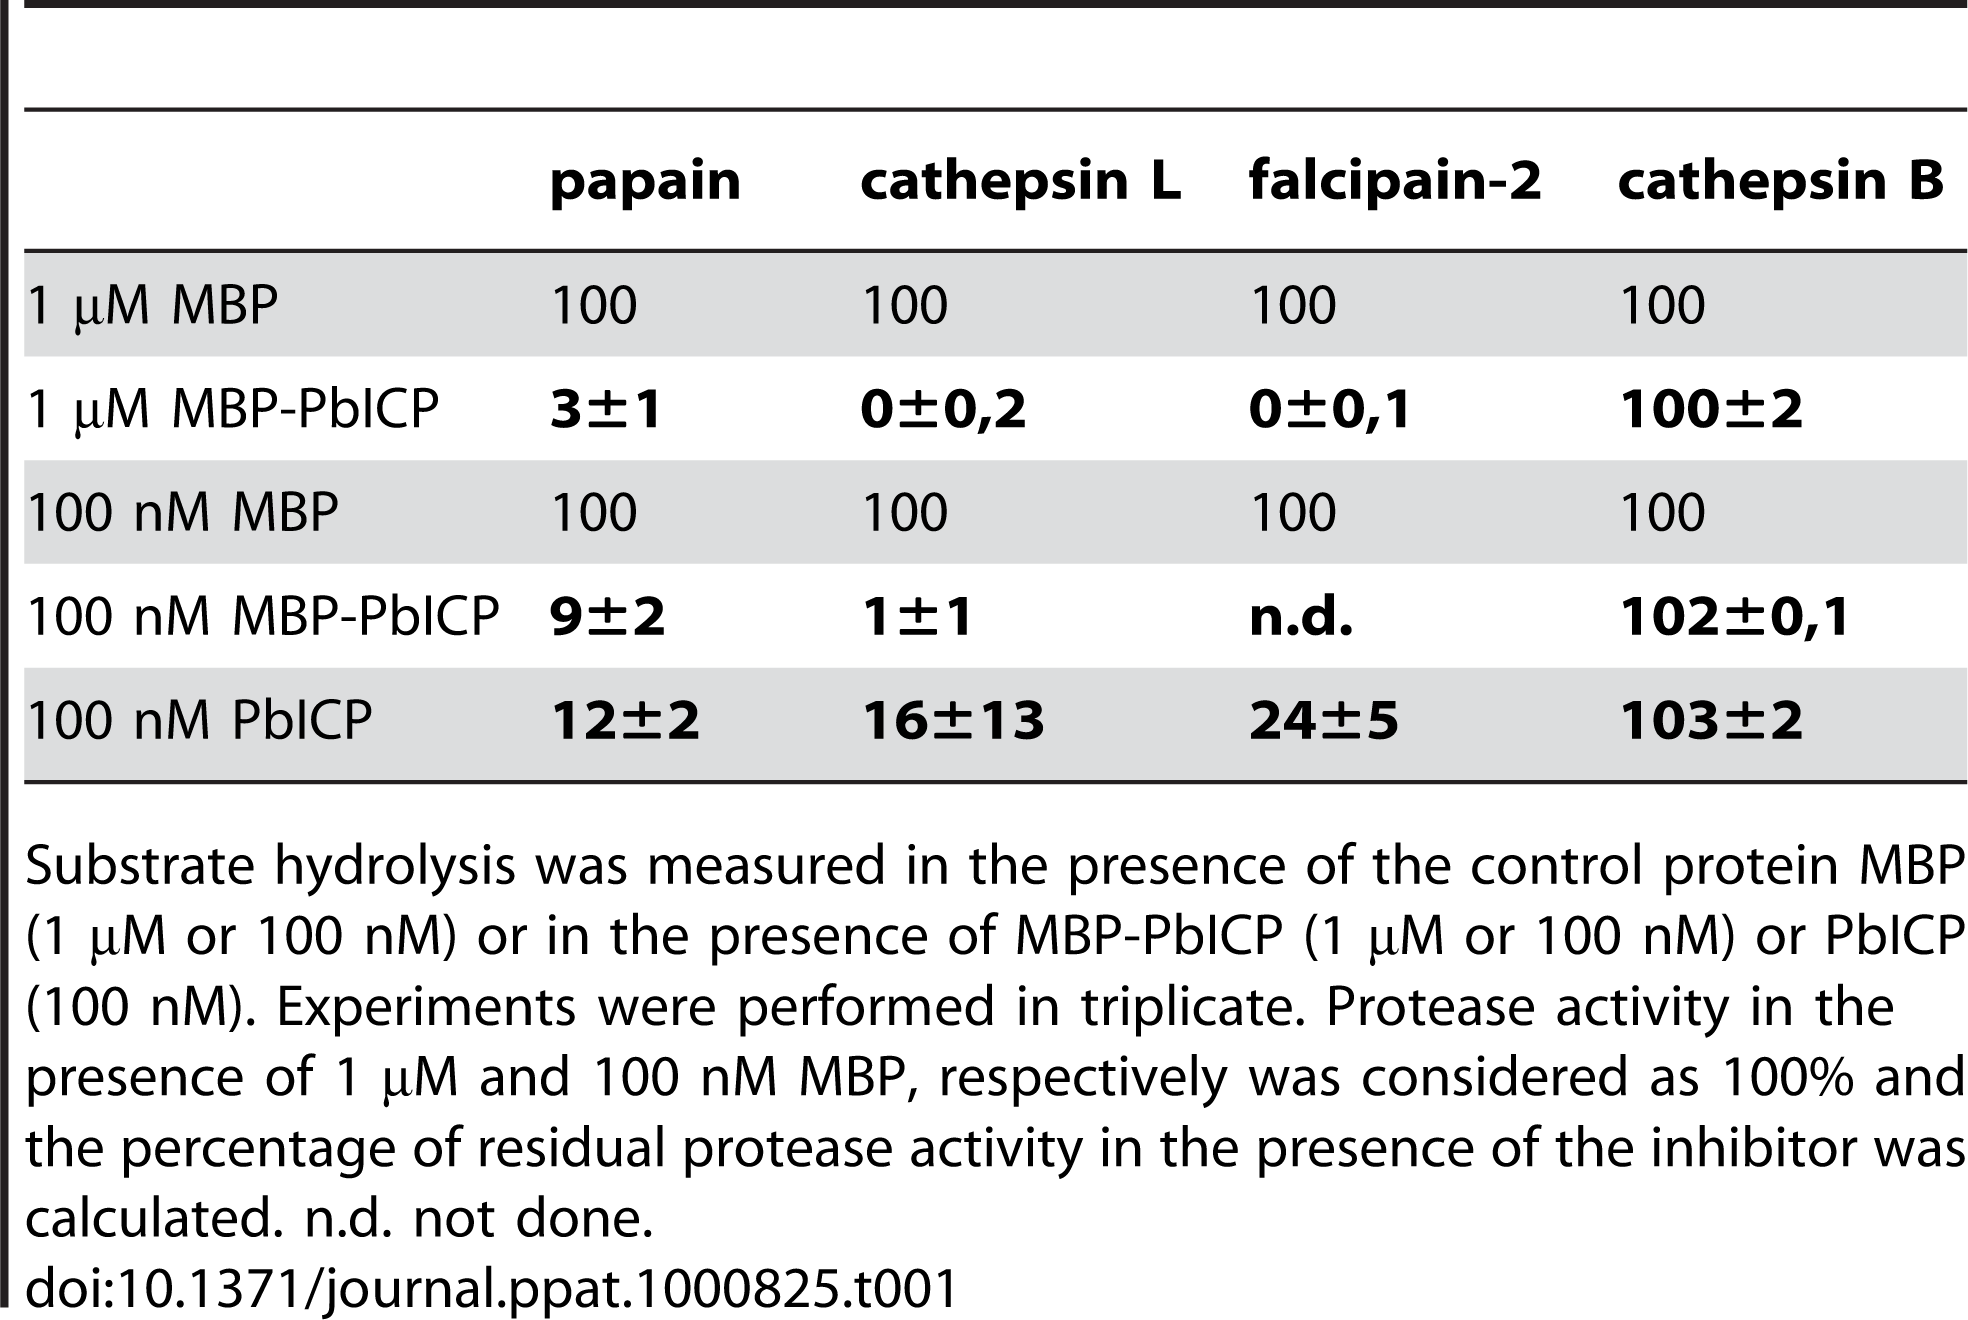 Recombinant PbICP is a potent inhibitor of cysteine proteases but not of cathepsin B.